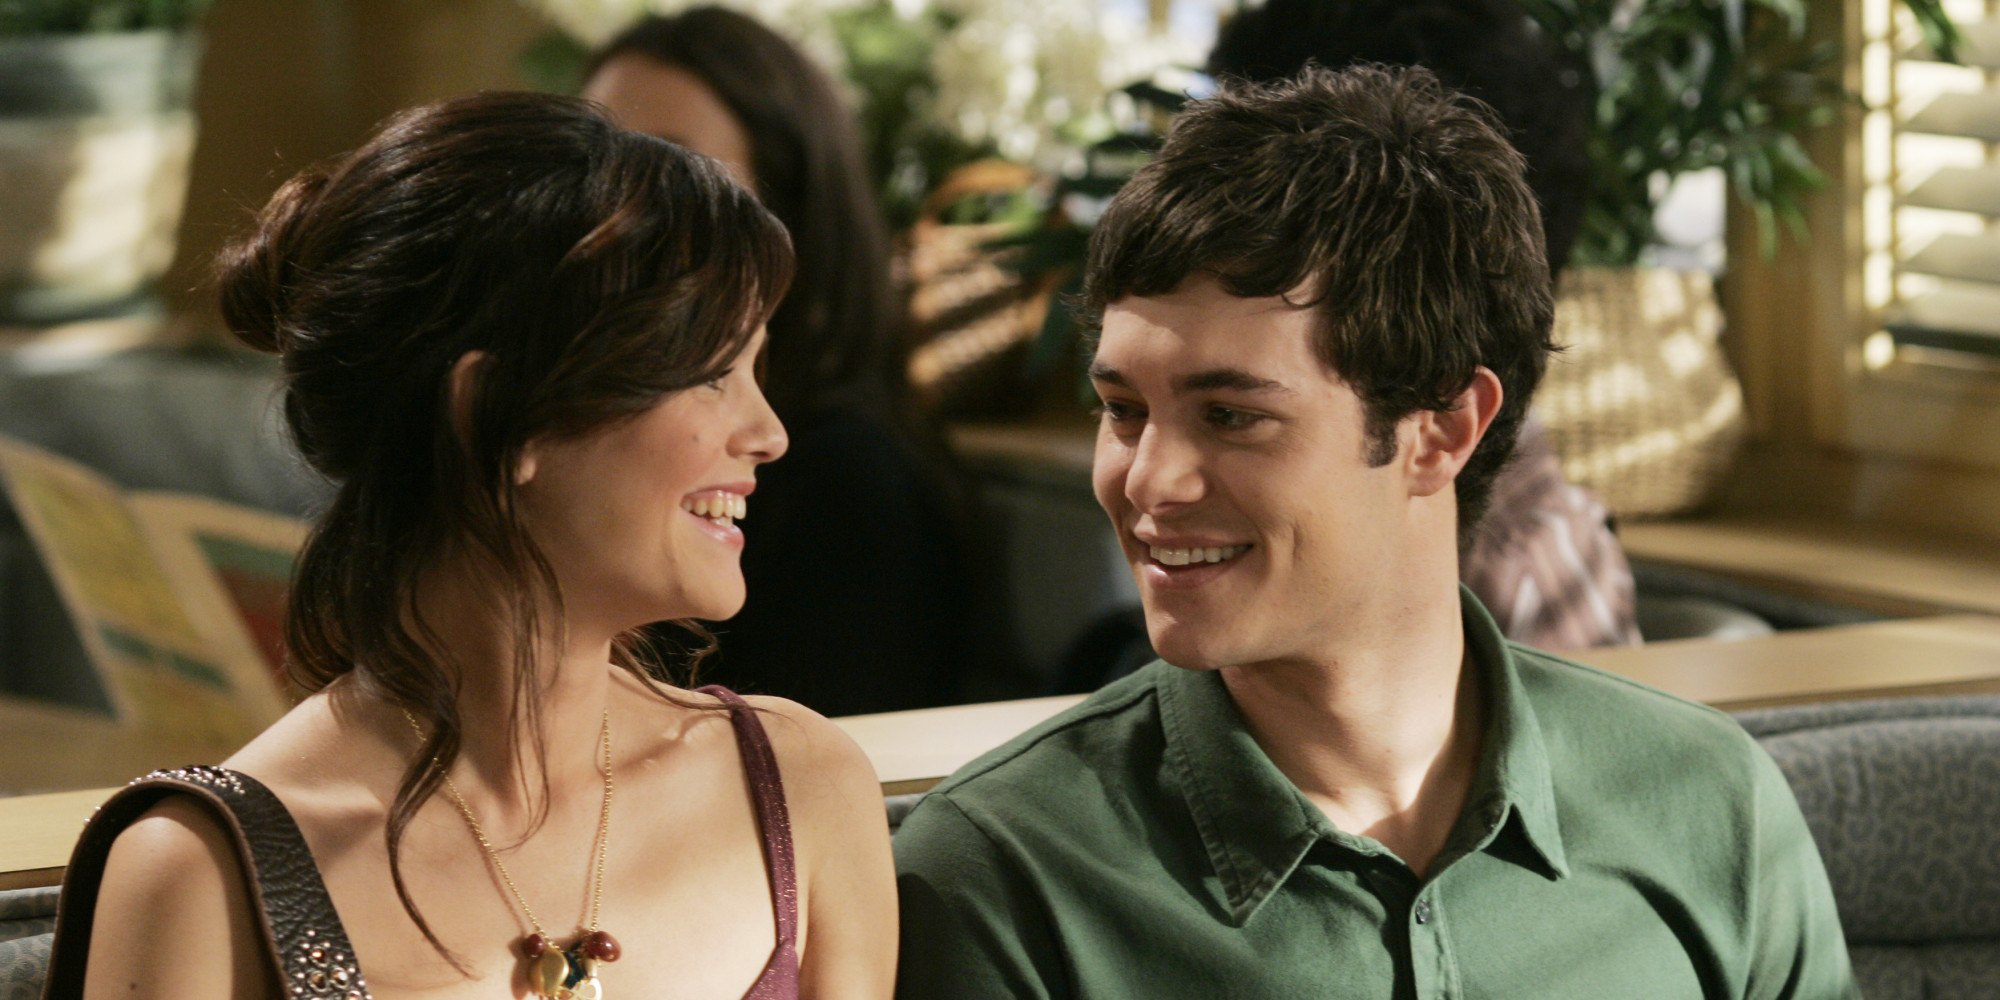 Rachel Bilson as Summer Roberts and Adam Brody as Seth Cohen on The O.C.